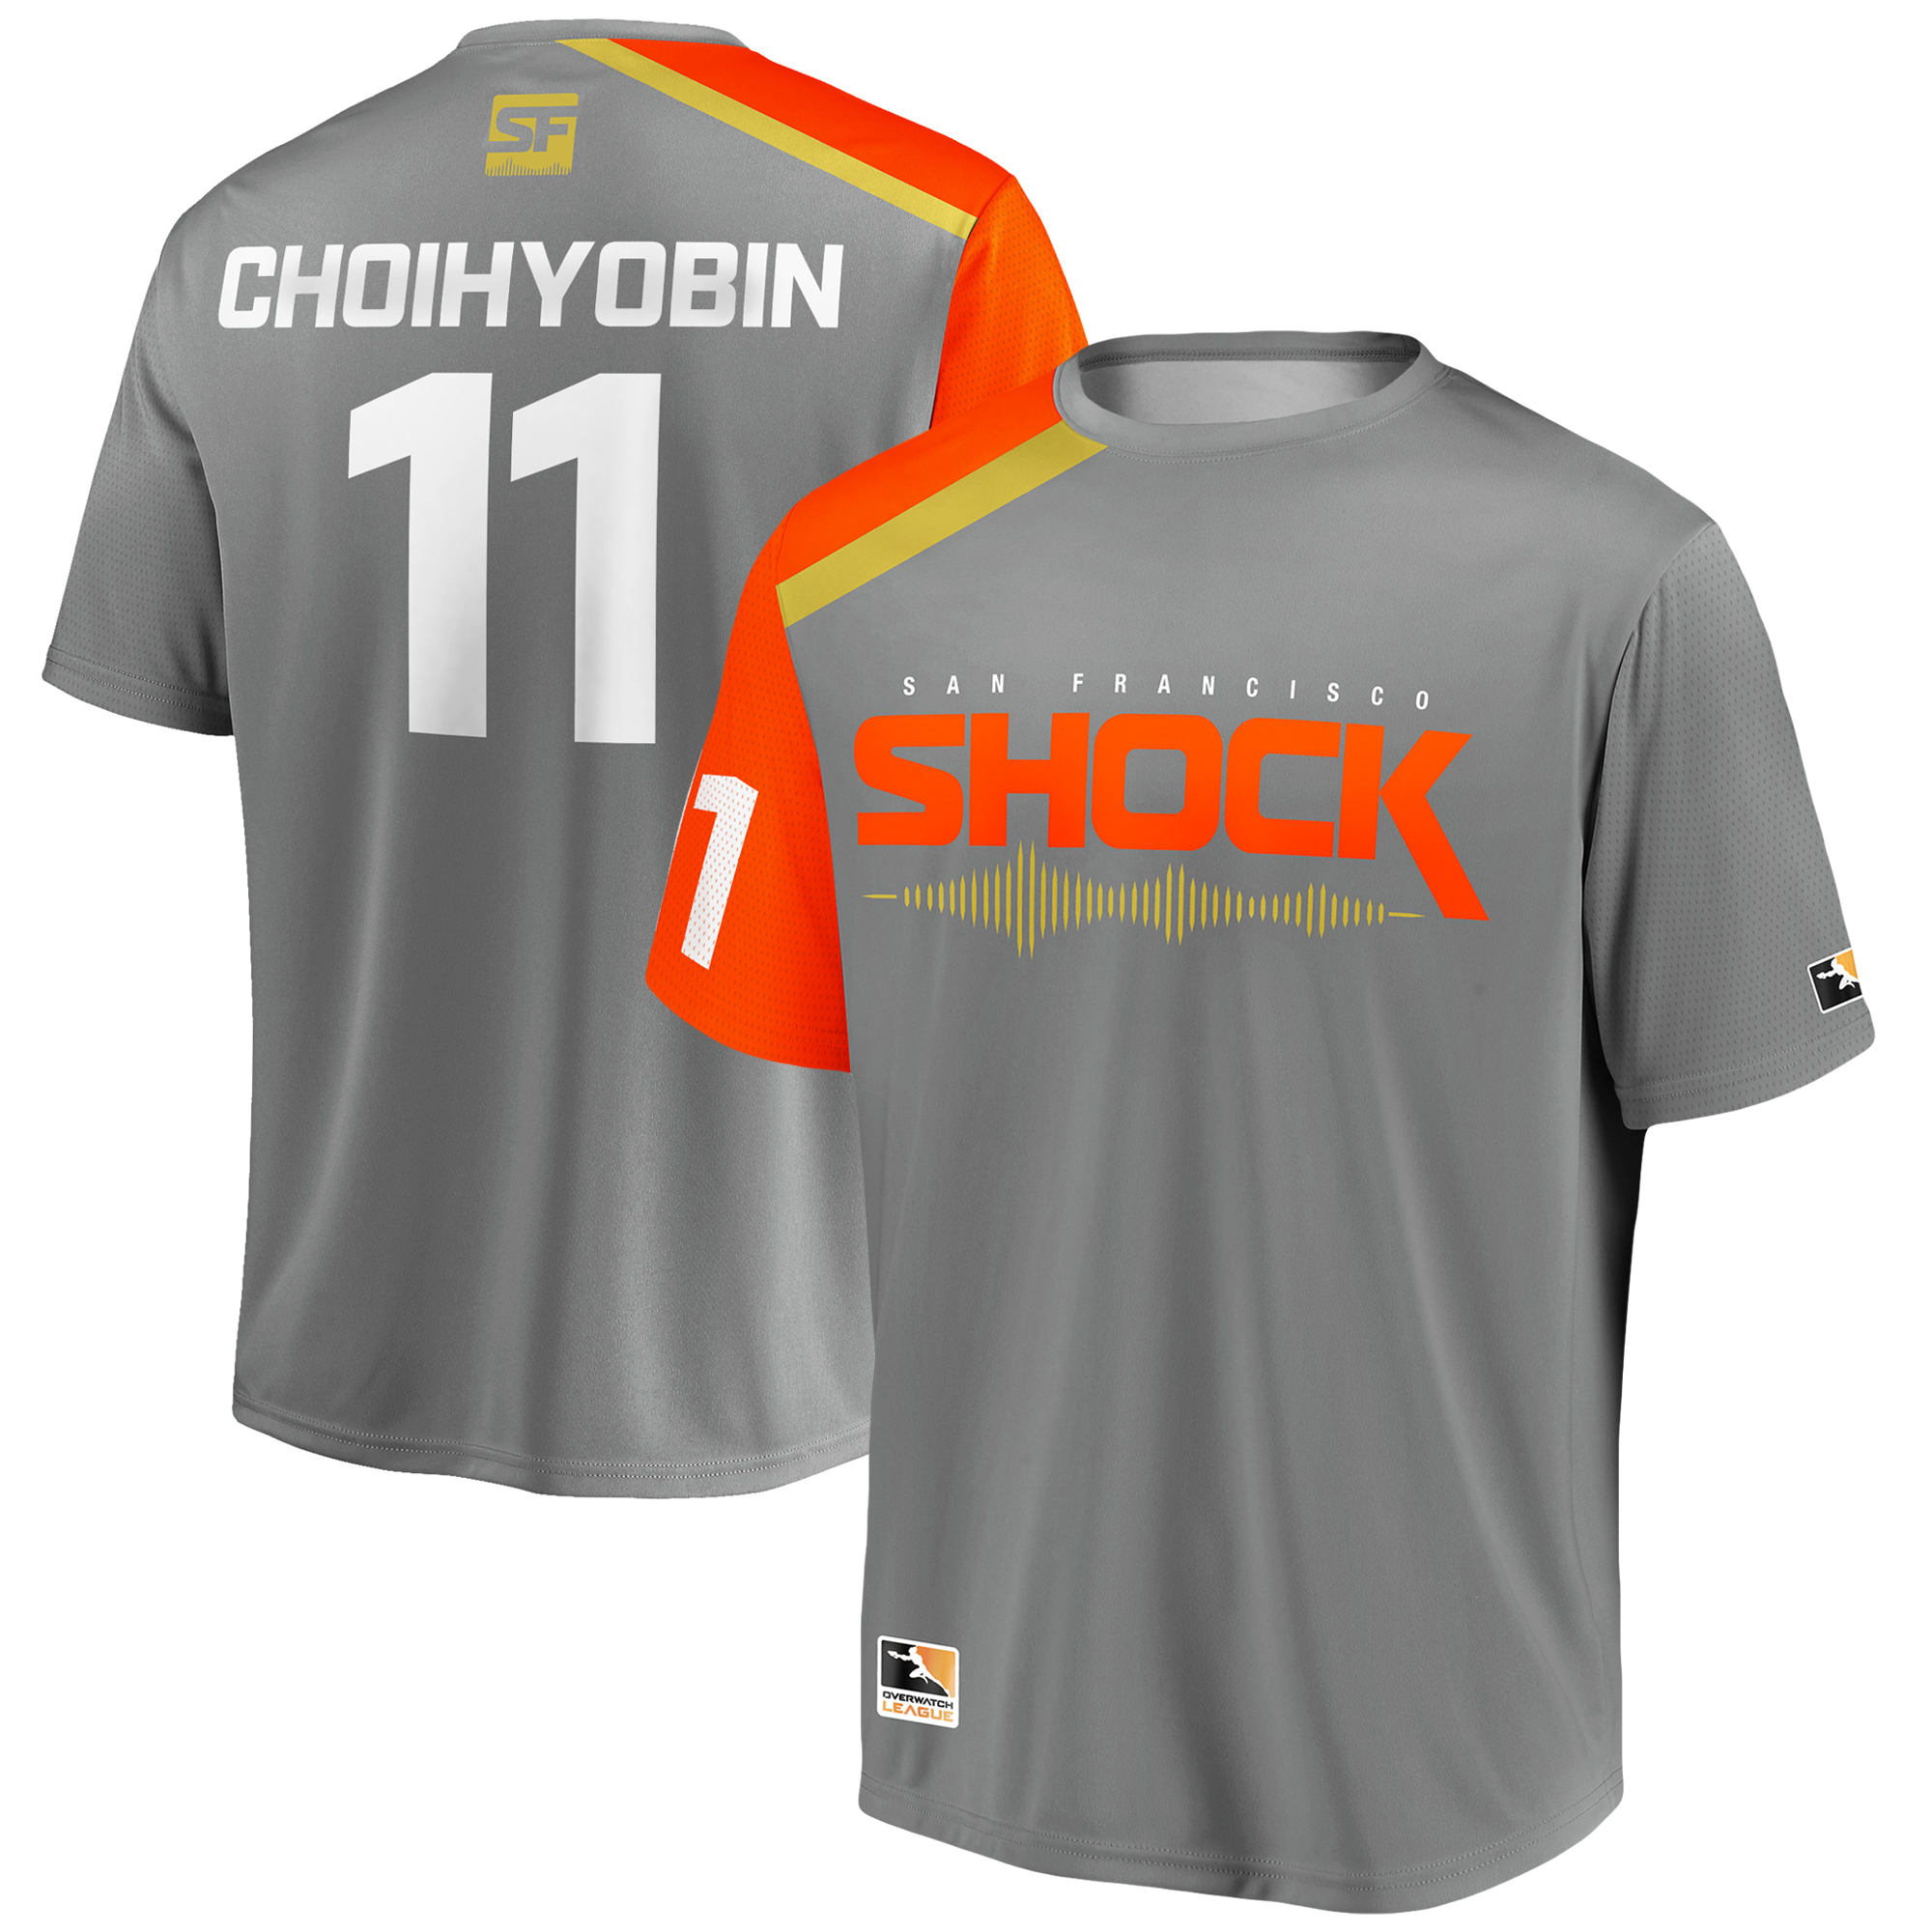 Choihyobin San Francisco Shock Overwatch League Replica Home Jersey - Gray